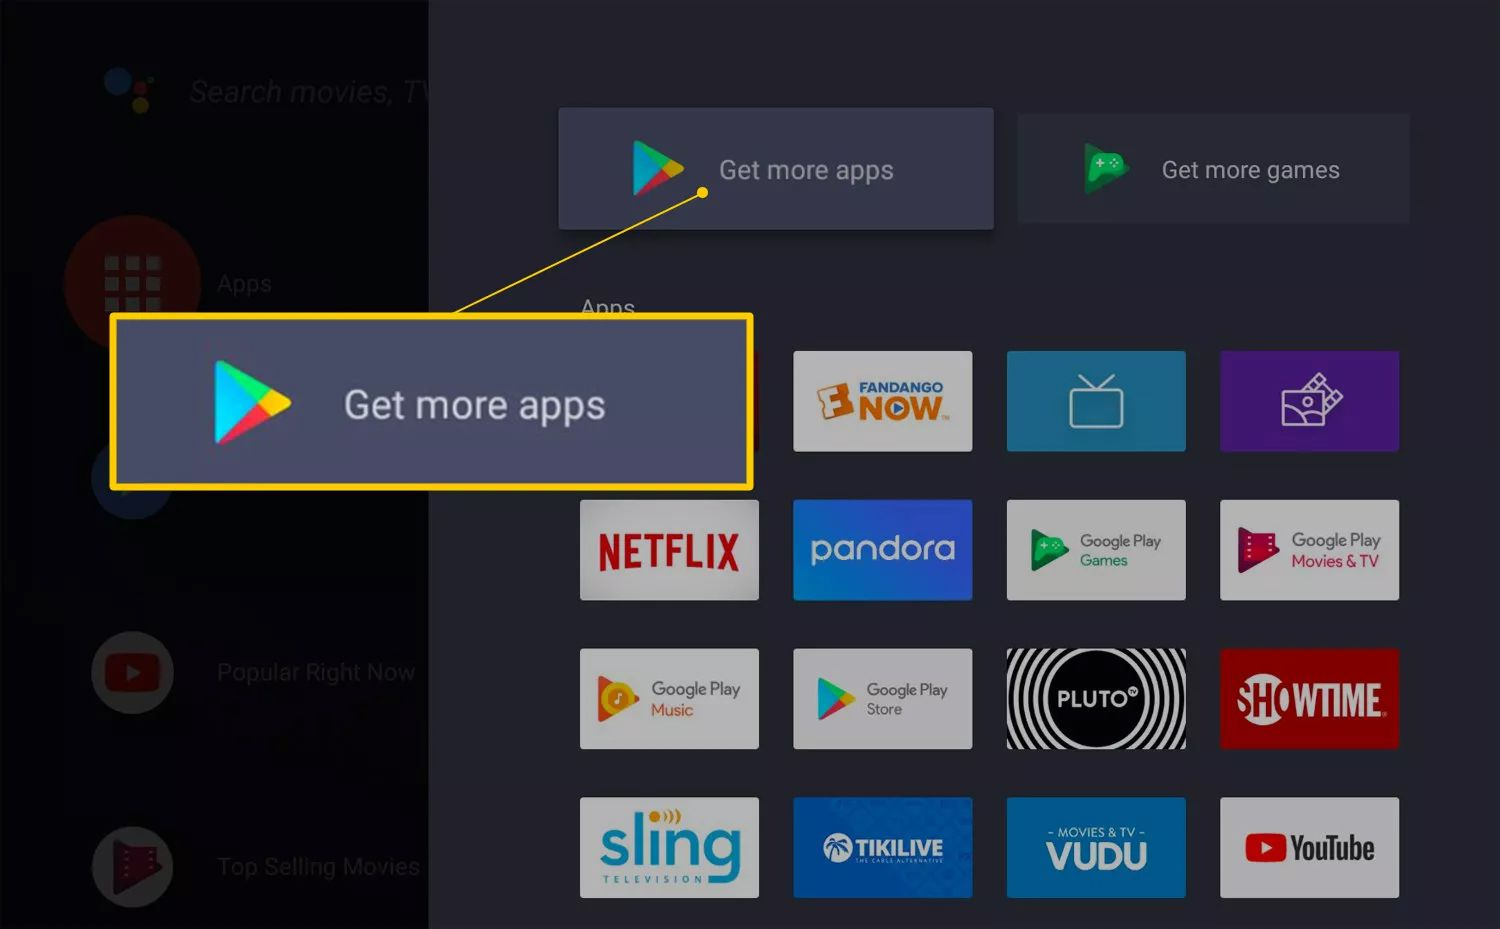 How to Add and Manage Apps on a Smart TV